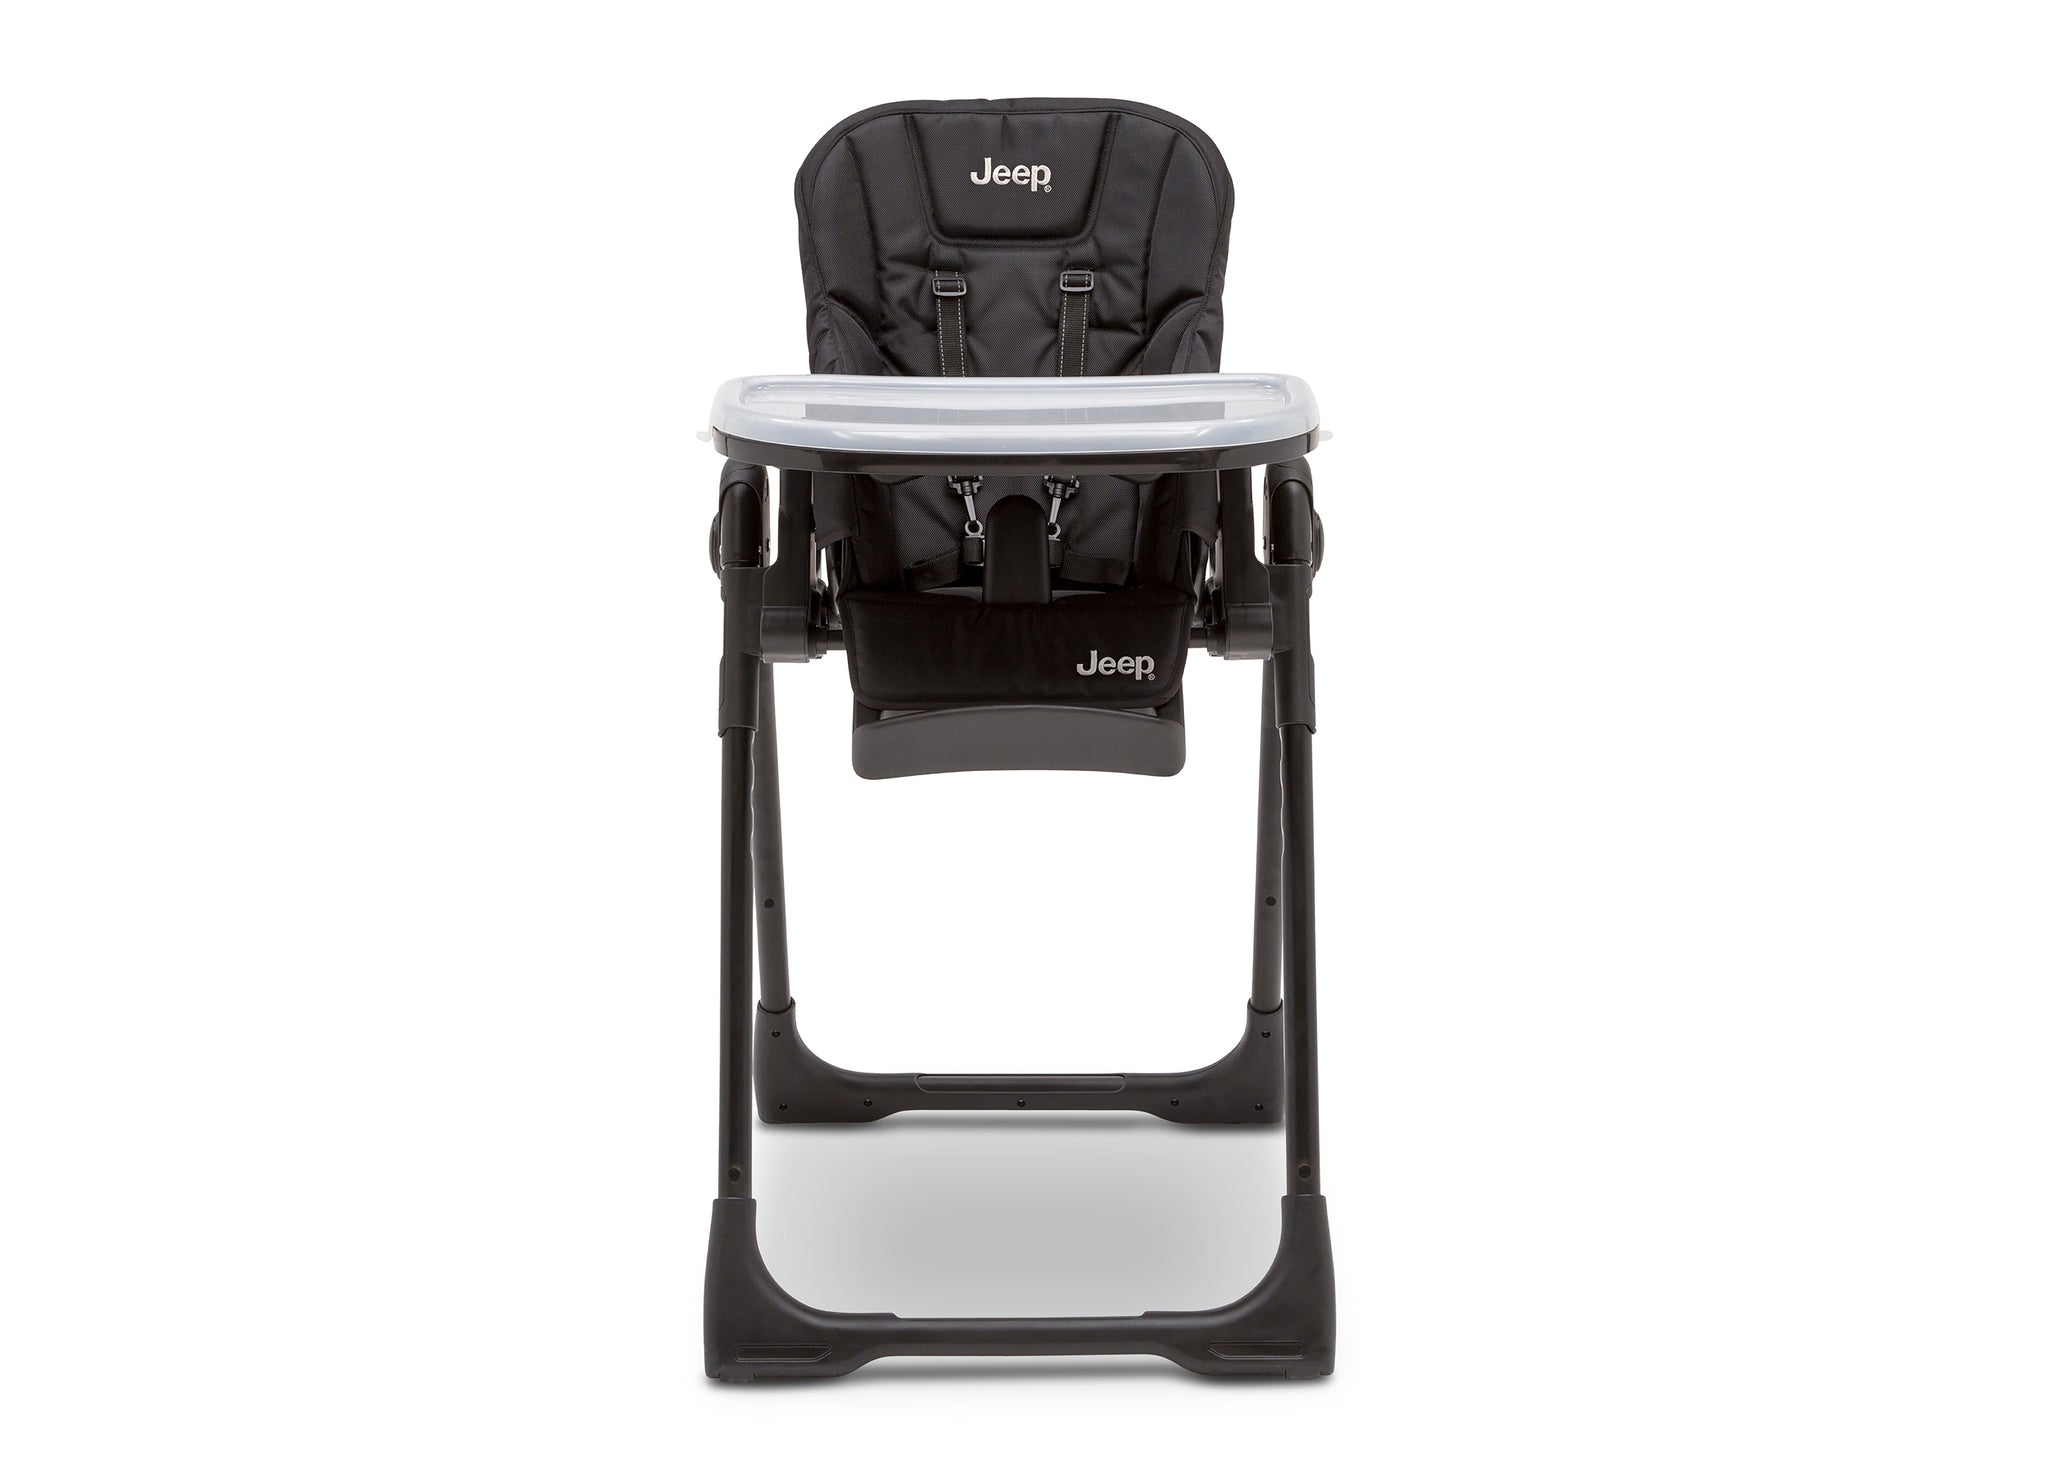 Jeep Classic Convertible High Chair for Babies and Toddlers by Delta Children, Midnight Black (2013), 5-point safety harness keeps little ones securely